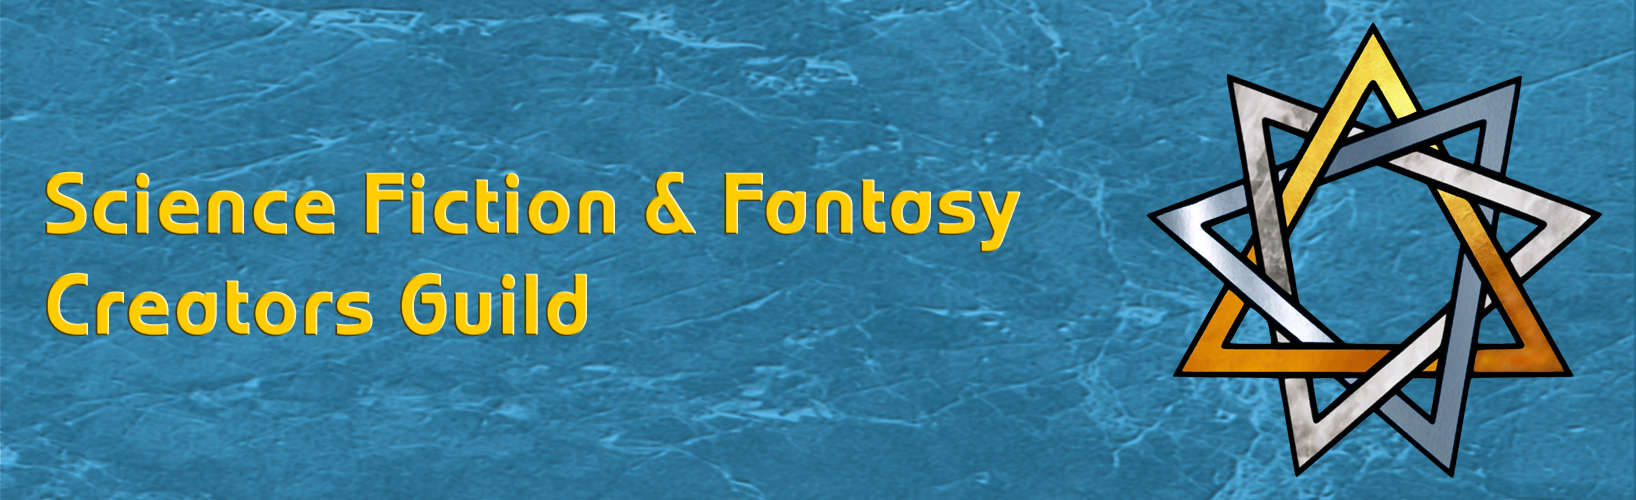 Science Fiction & Fantasy Creators Guild